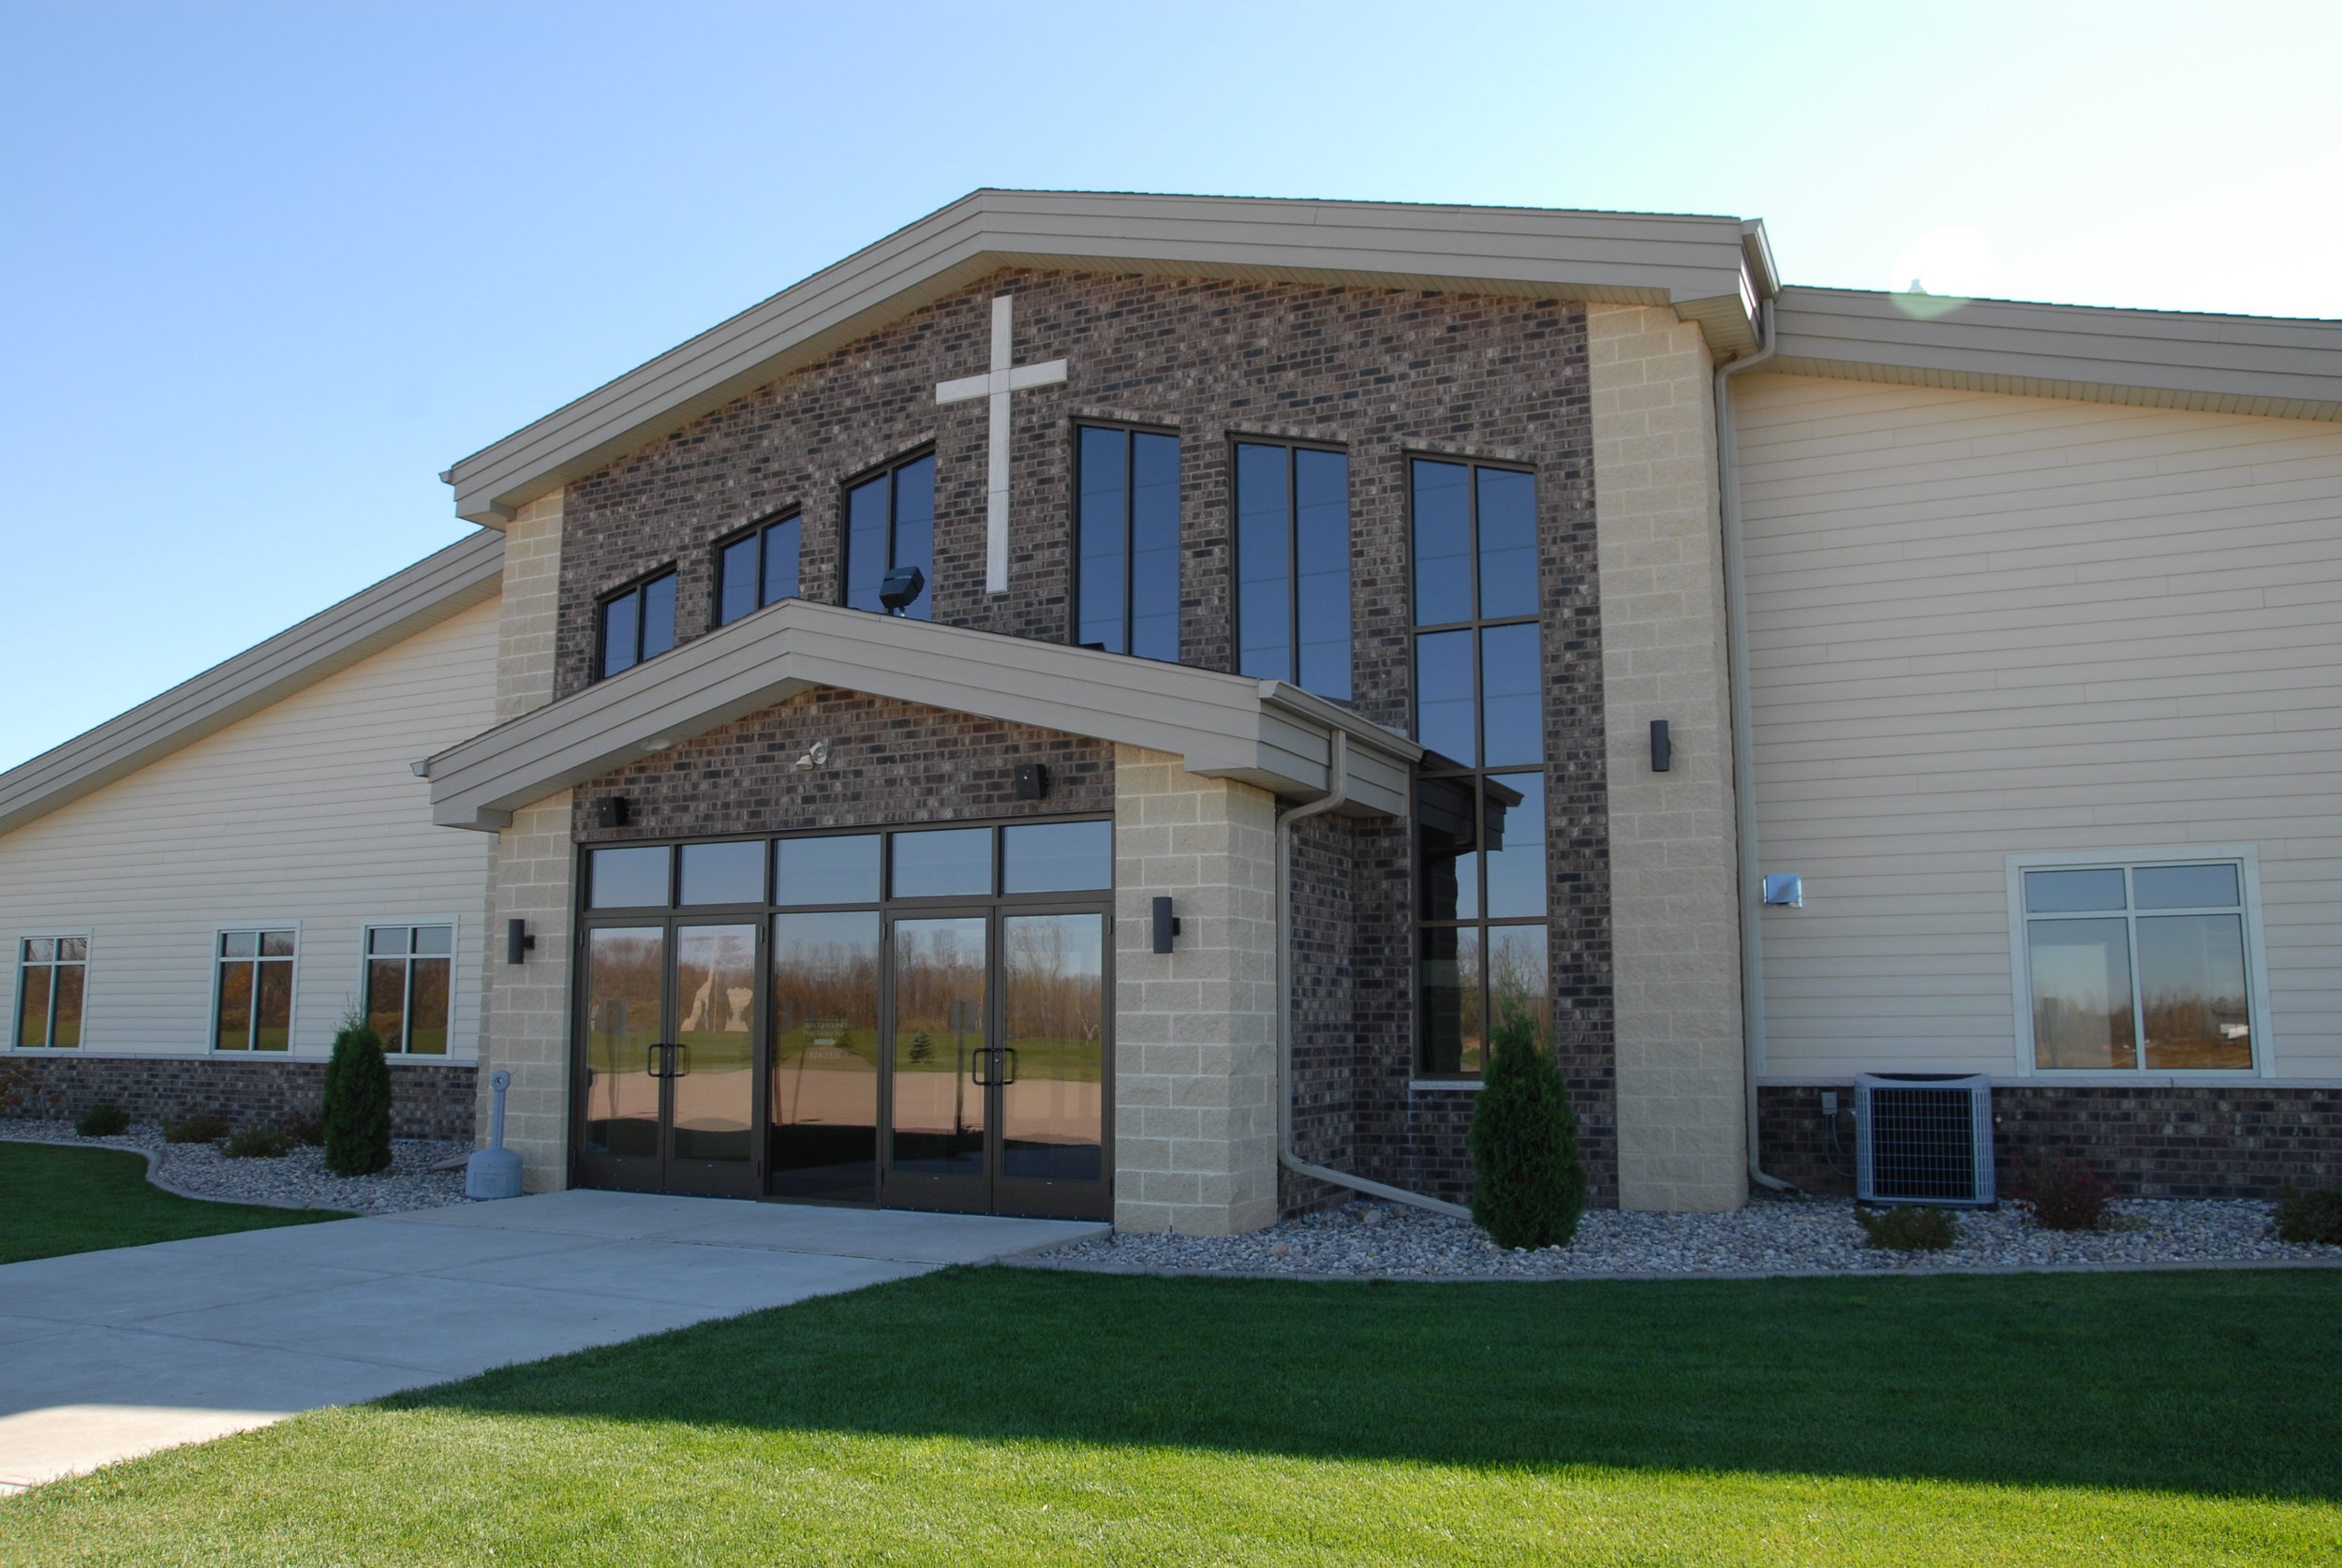 HOPE COMMUNITY CHURCH - SHAWANO, WISCONSIN